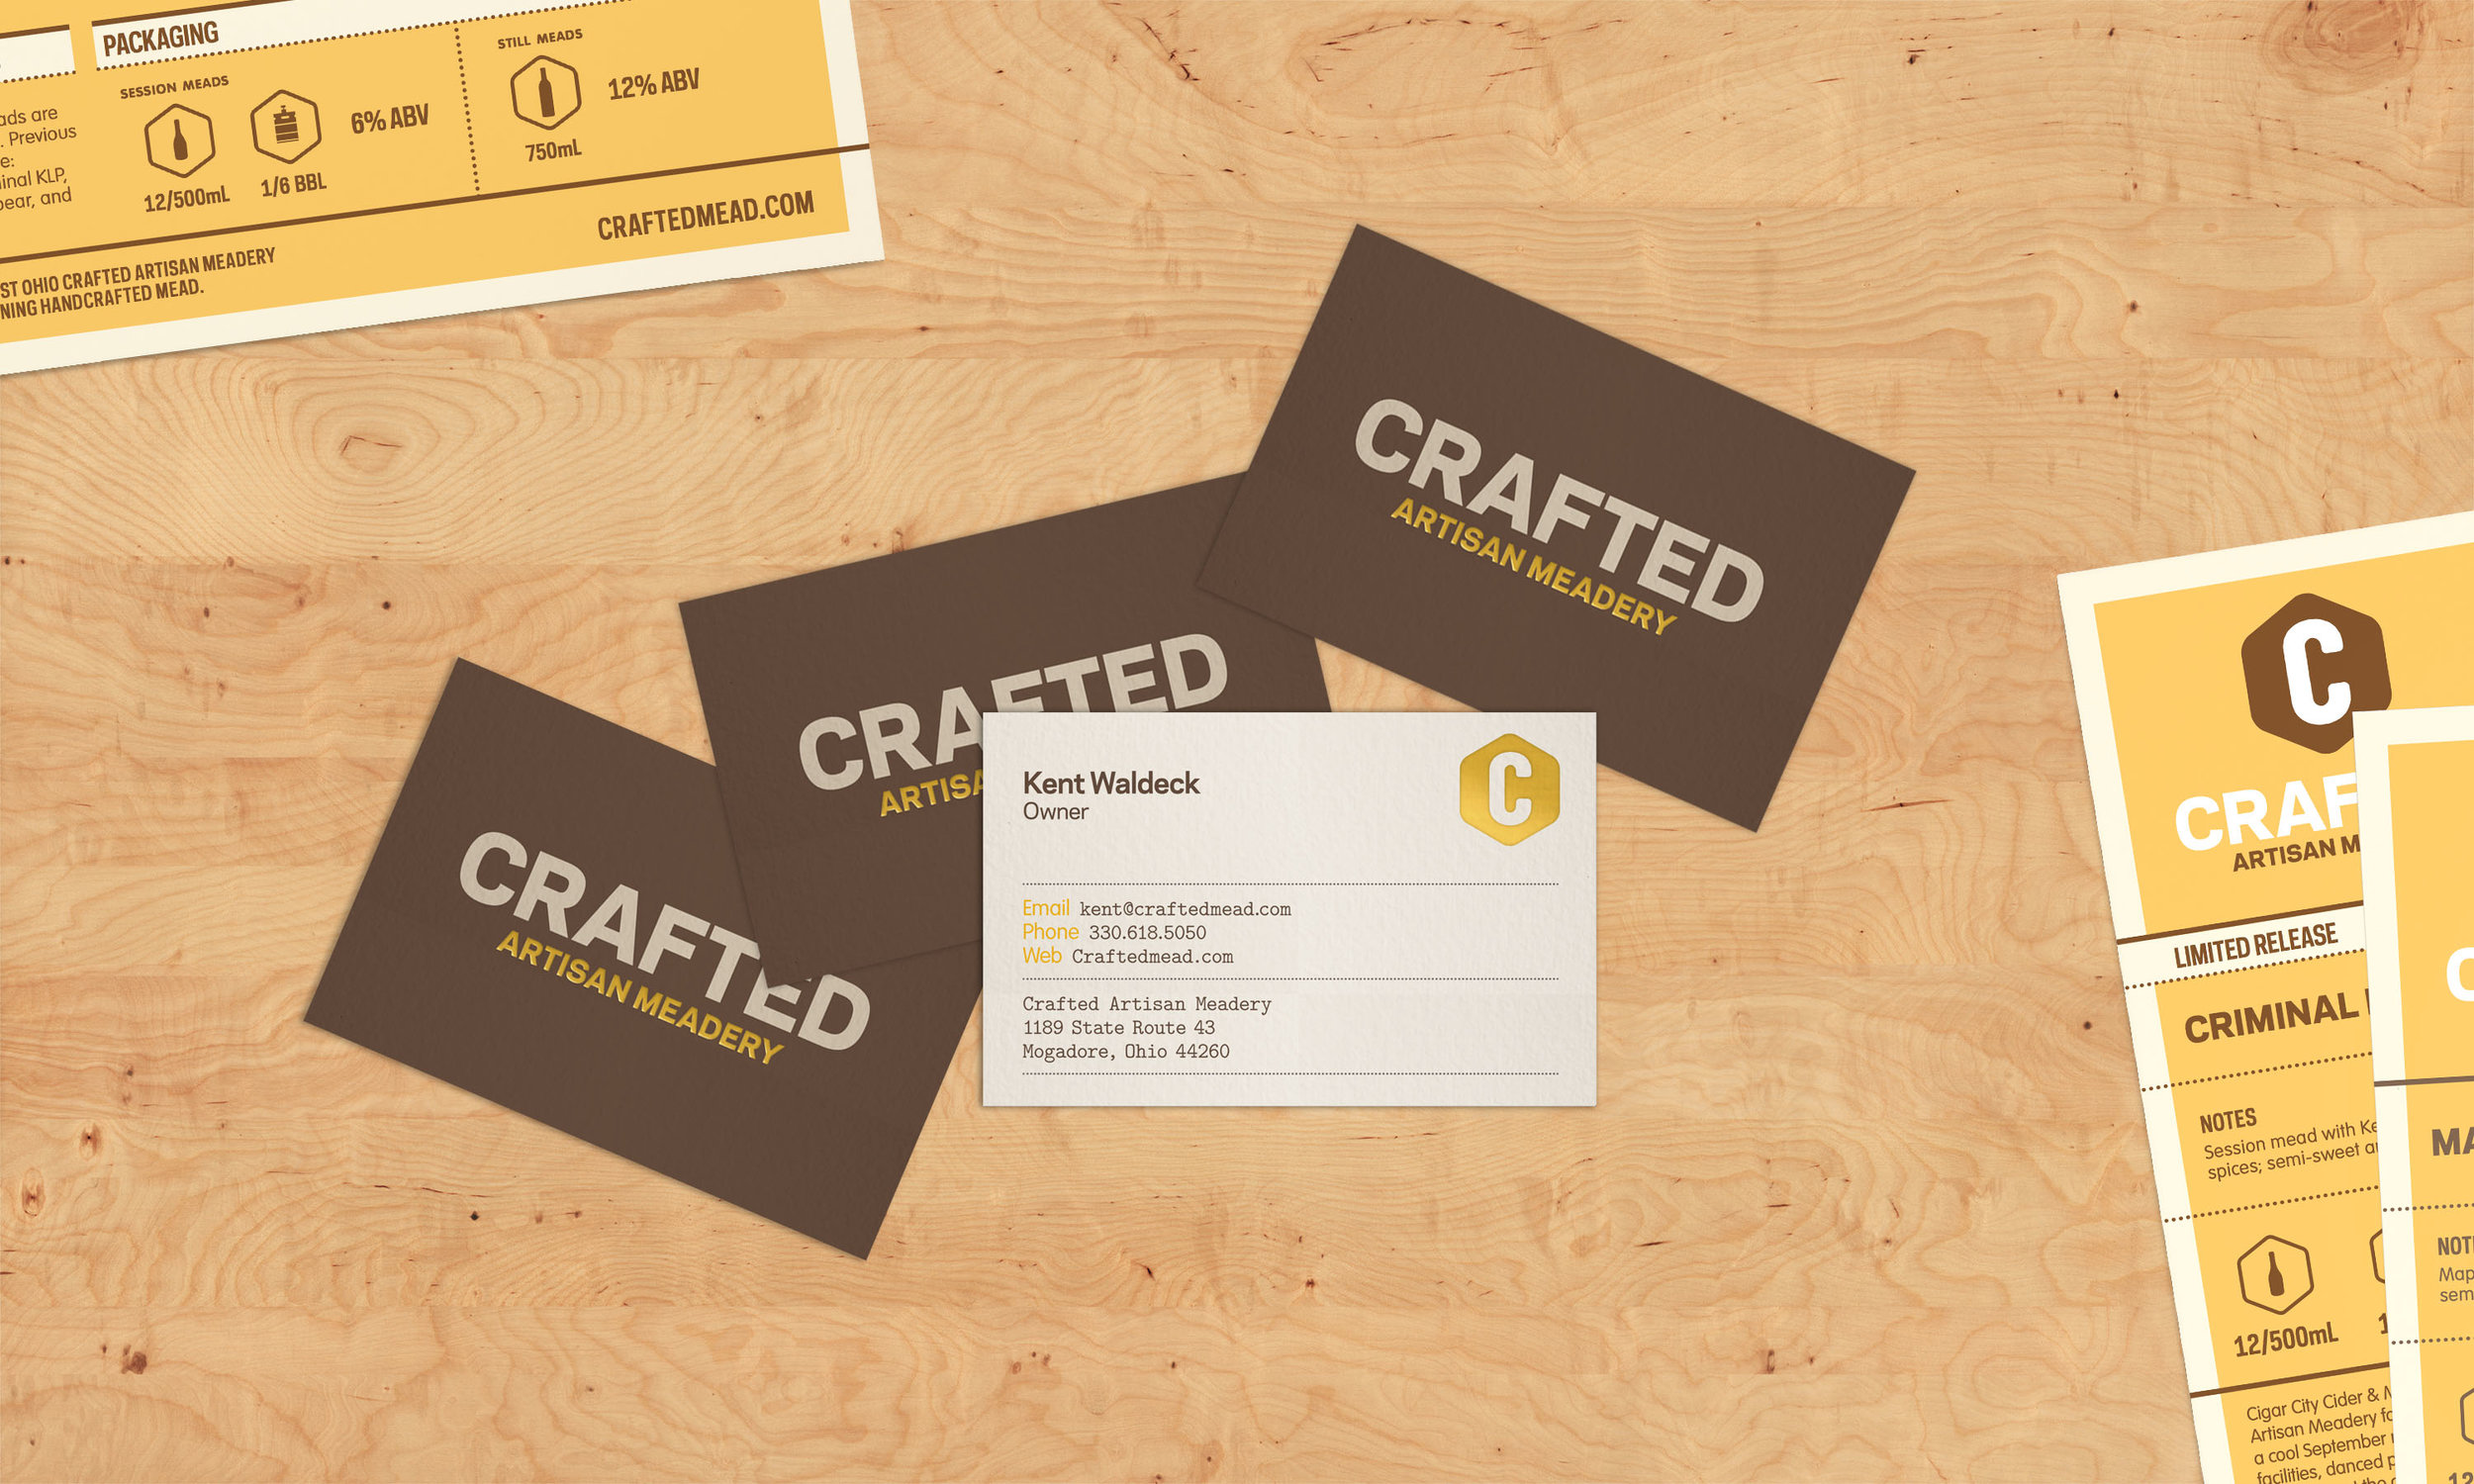 Crafted Artisan Meadery — Grafica Columbus Ohio Branding and